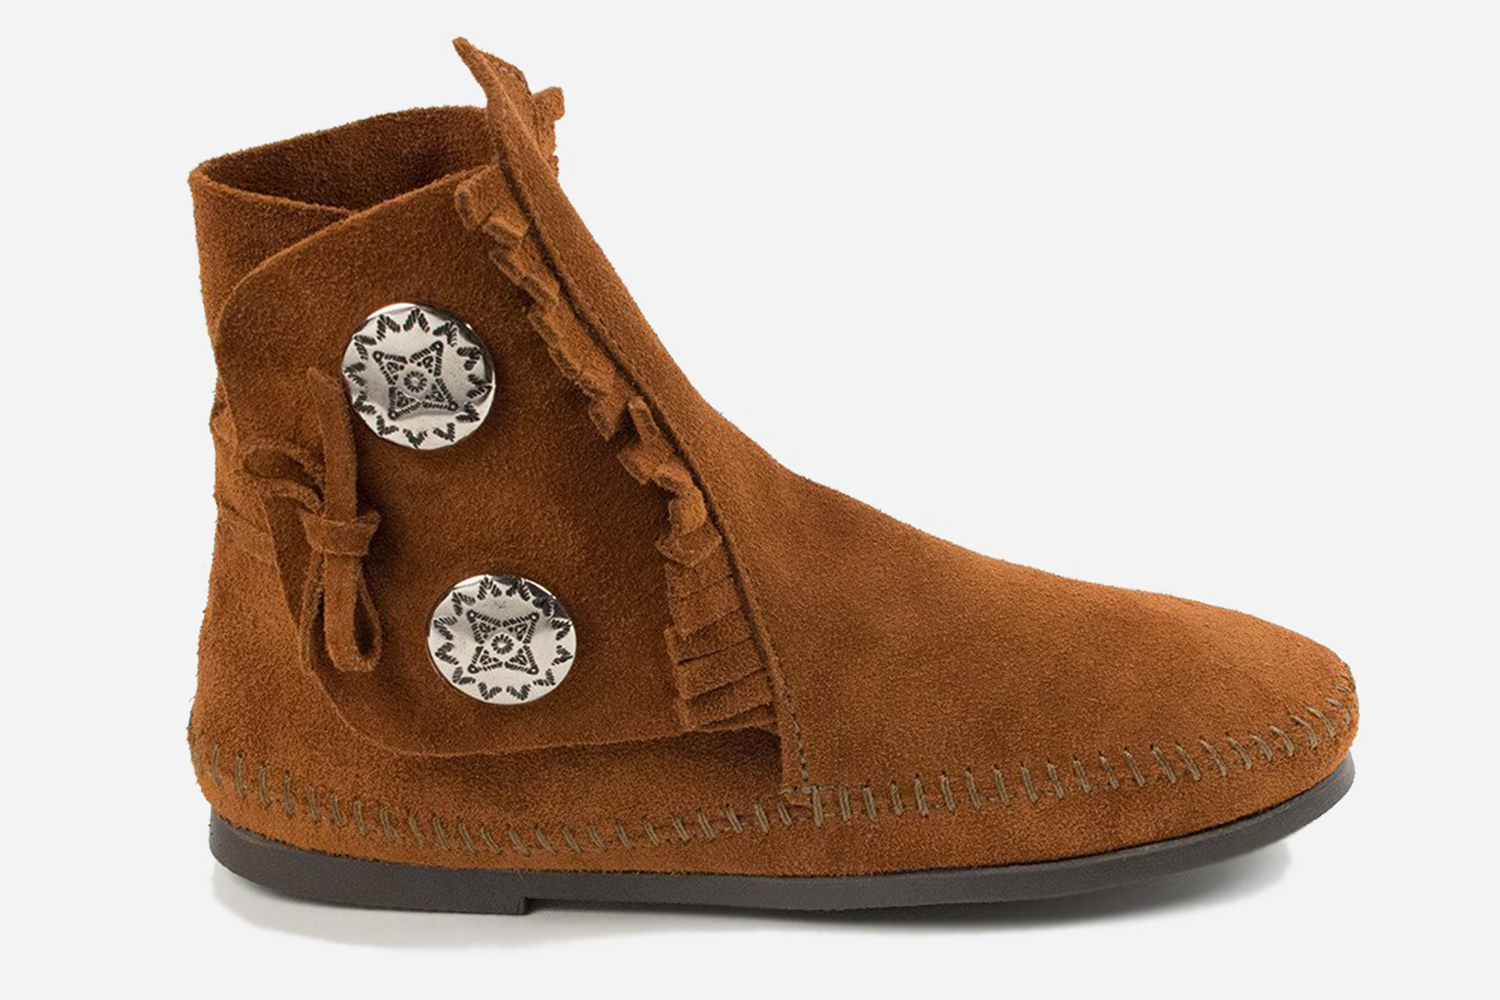 """Brad Pitt's Boots Two Button Hardsole Minnetonka Moccasin From """"Once Upon a Time in Hollywood"""""""